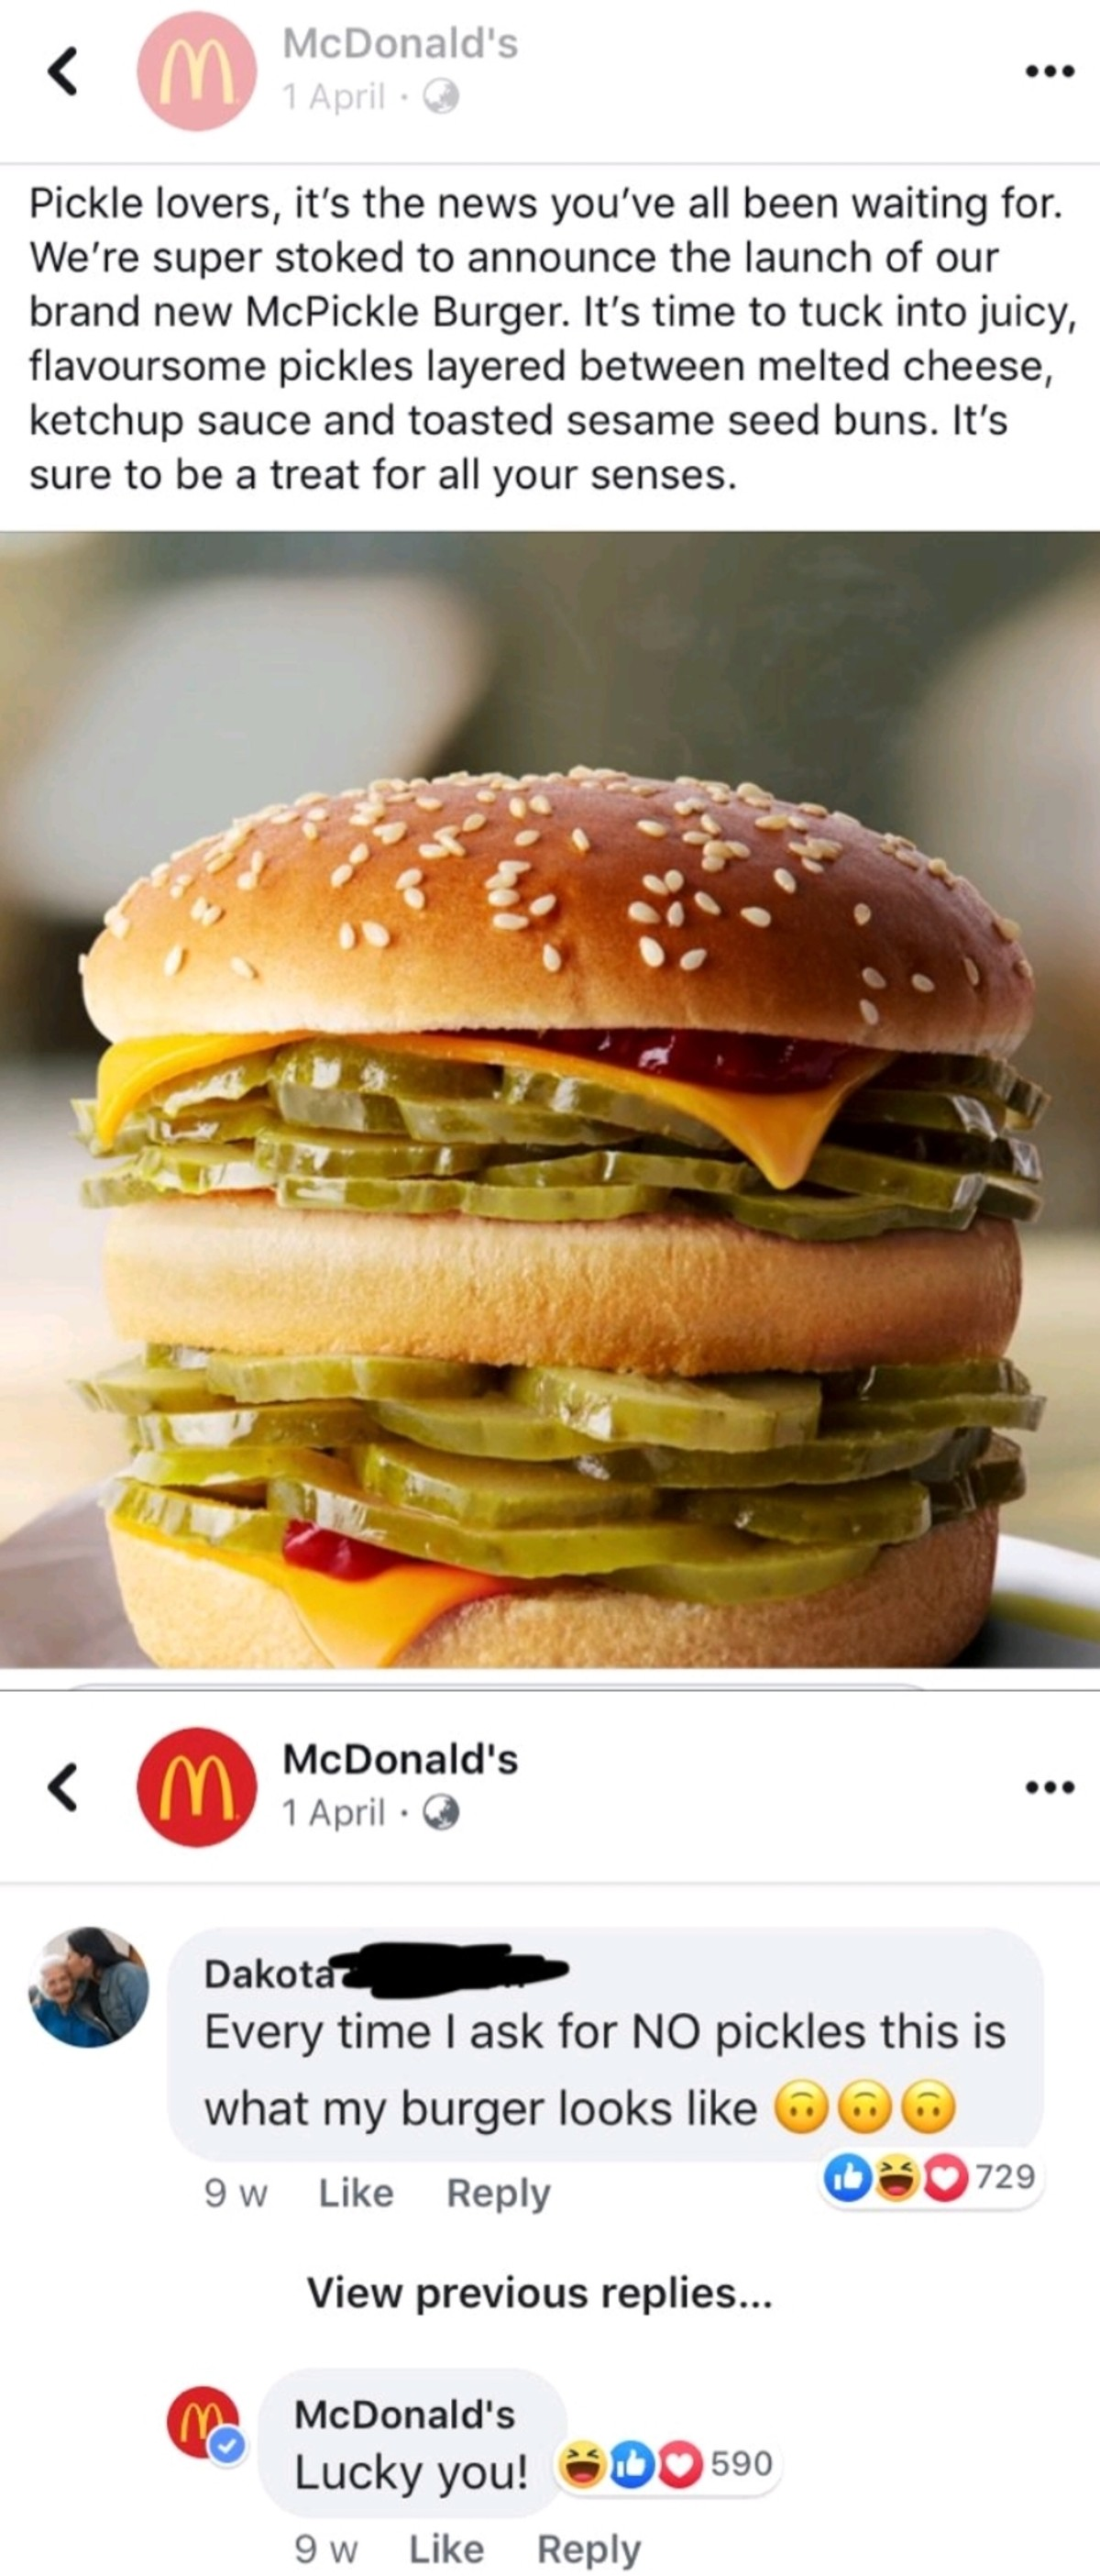 Pickles. .. i'll have one mcpickle burger with no pickles please